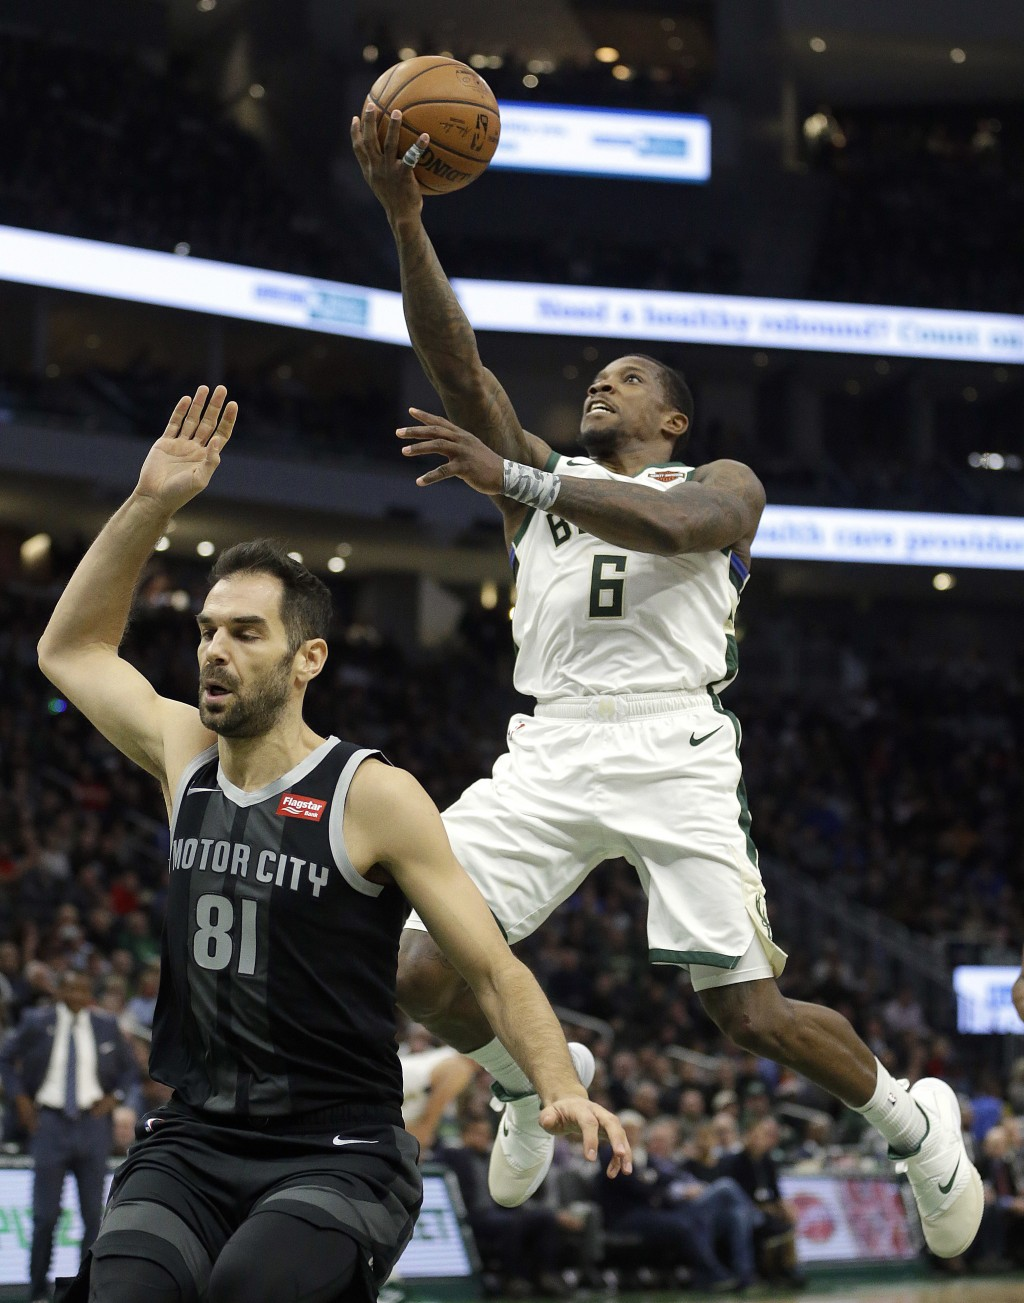 Milwaukee Bucks' Eric Bledsoe (6) goes up for a shot in front of Detroit Pistons' Jose Calderon during the second half of an NBA basketball game Wedne